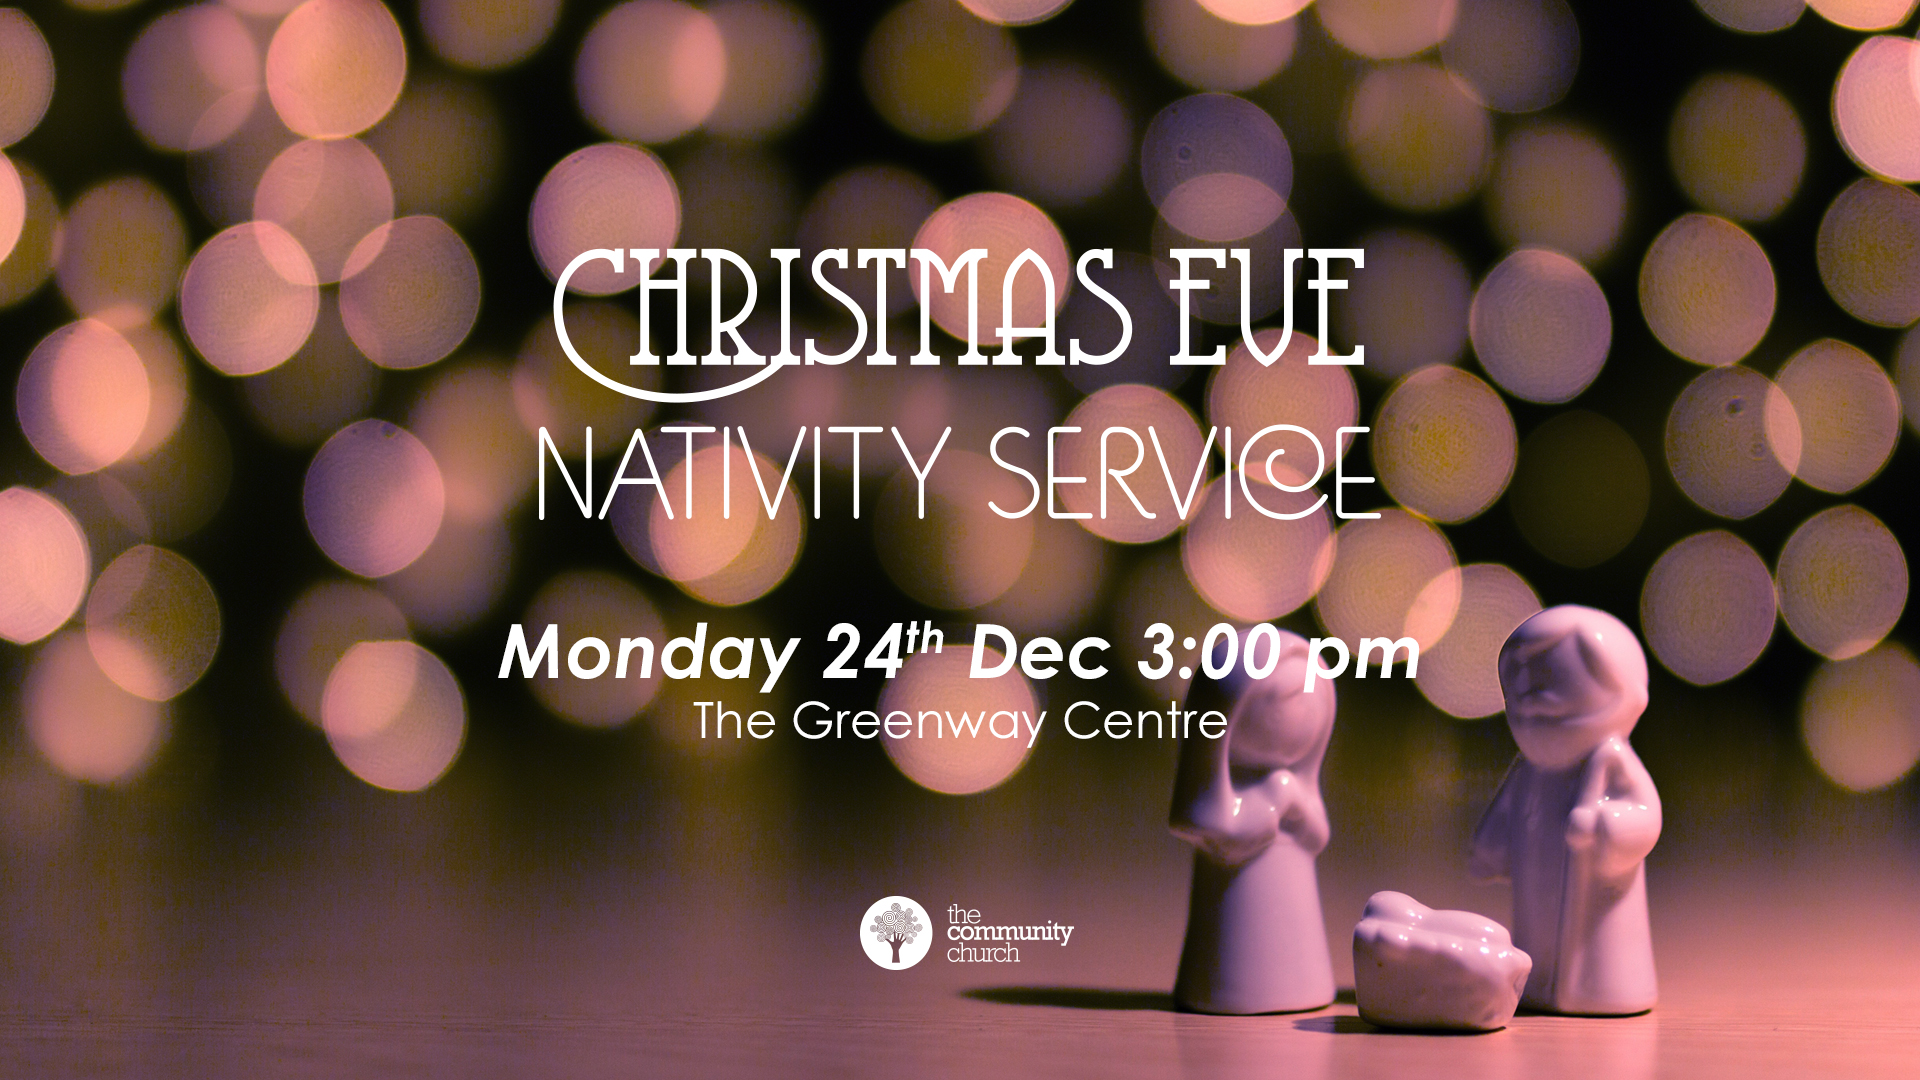 Family-friendly Christmas activities and a Nativity! (Themed fancy dress encouraged)